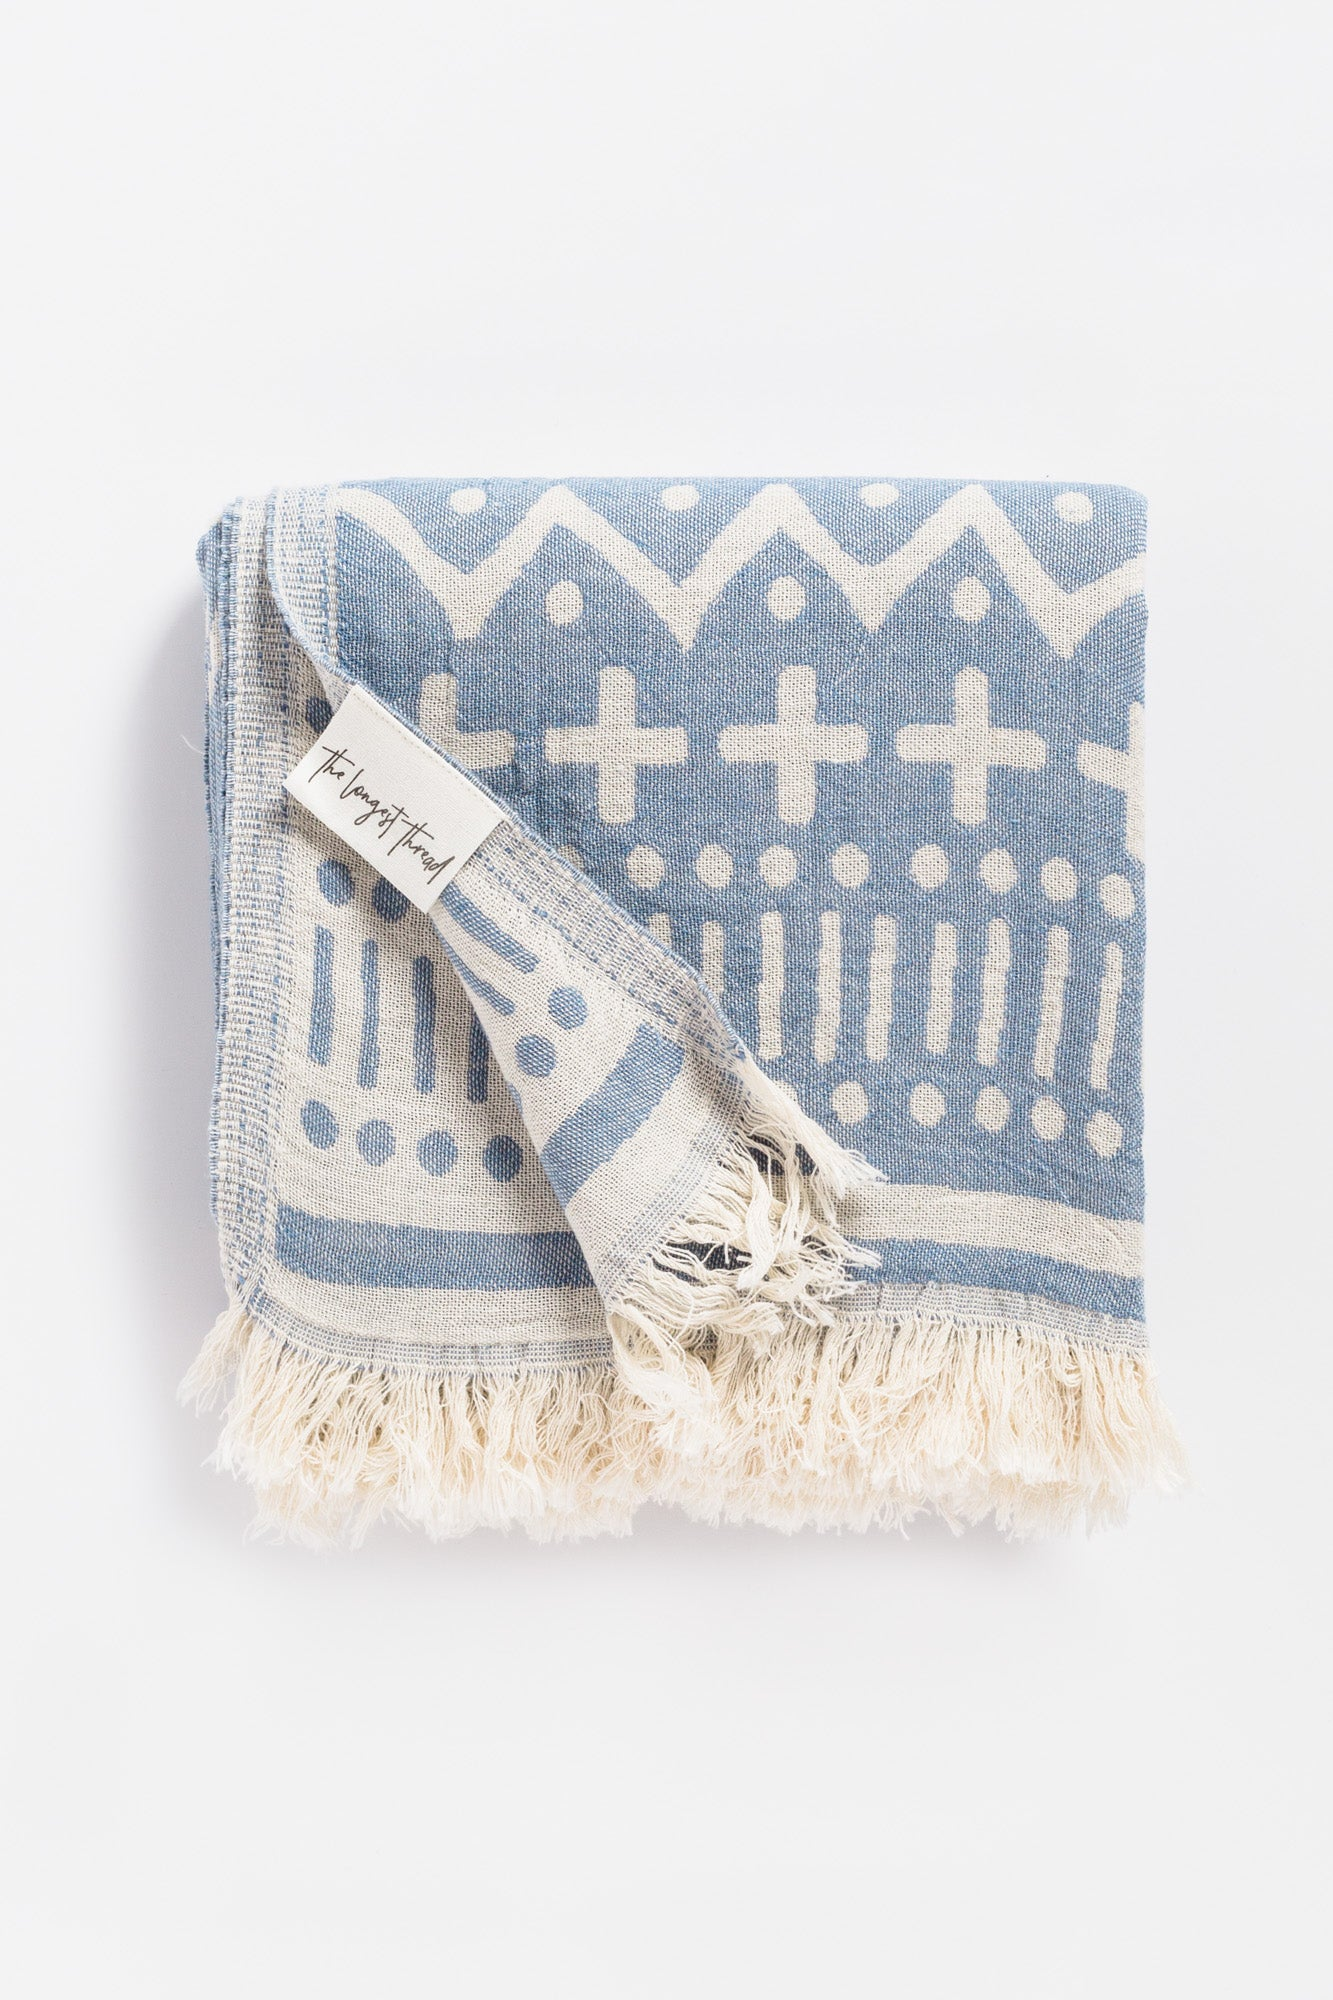 Maghreb Denim Turkish Towel